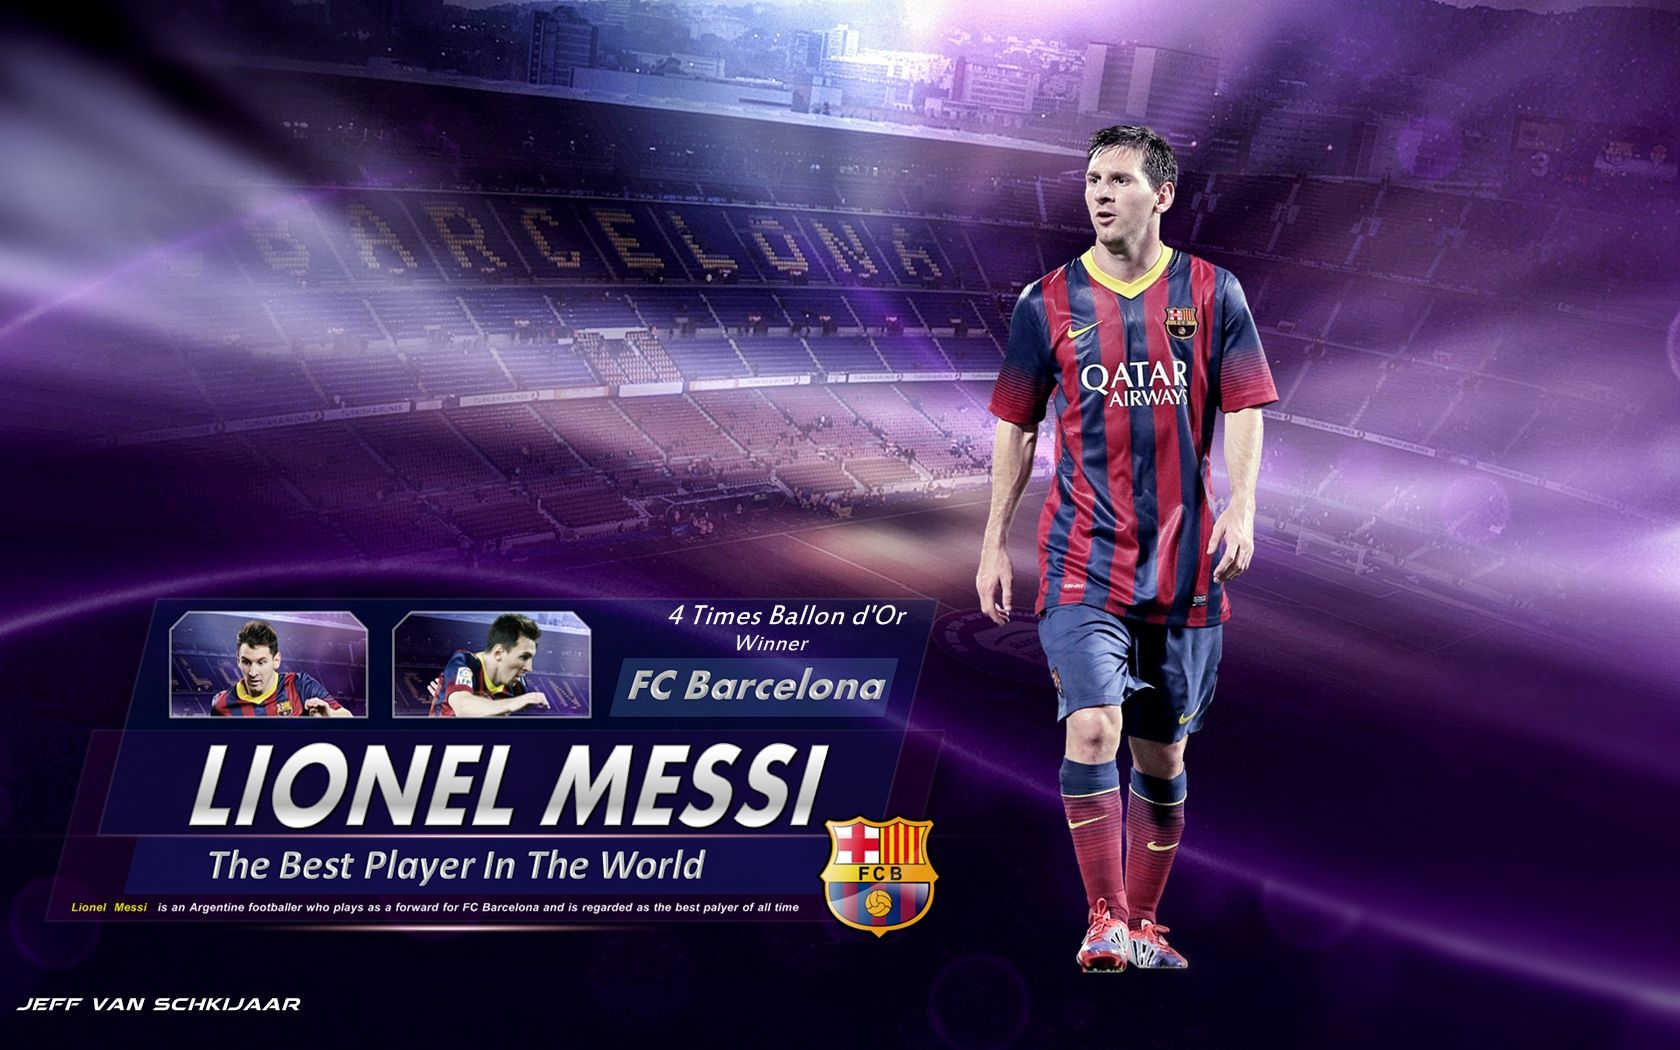 Lionel Messi Wallpapers Pictures Images × Lionel Messi